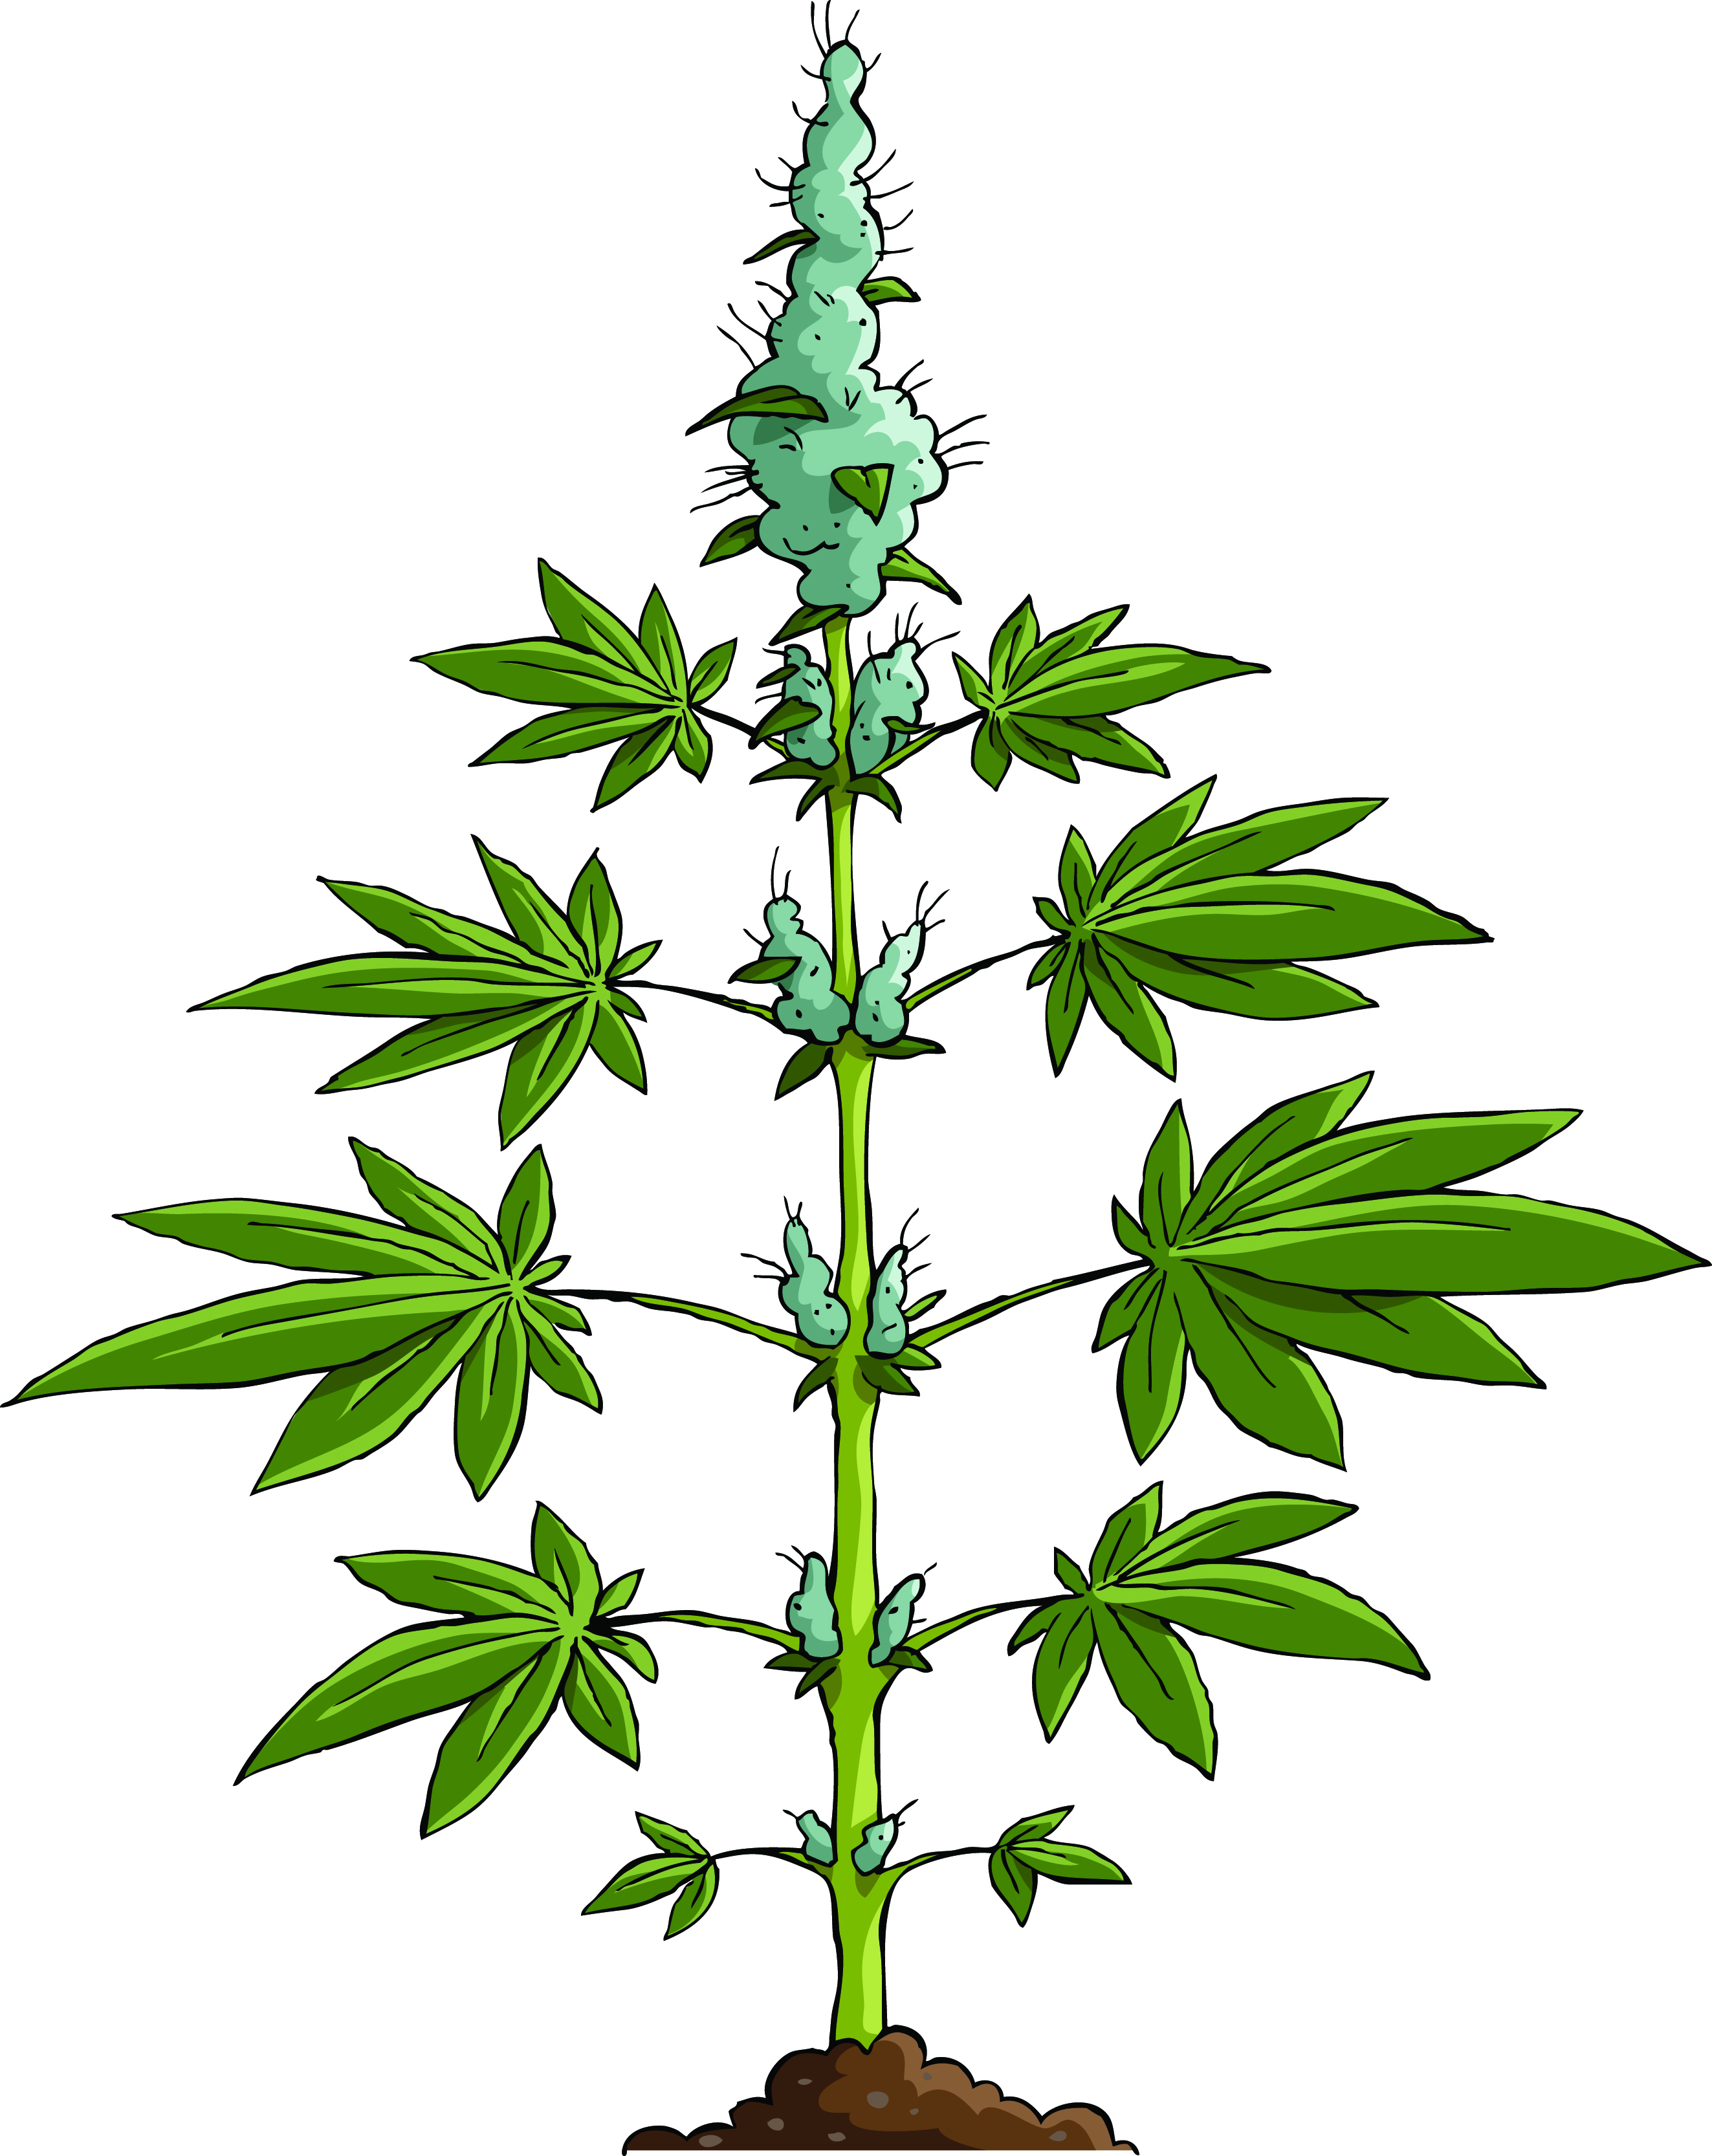 Drawn pot plant cartoon weed Local your to Post The